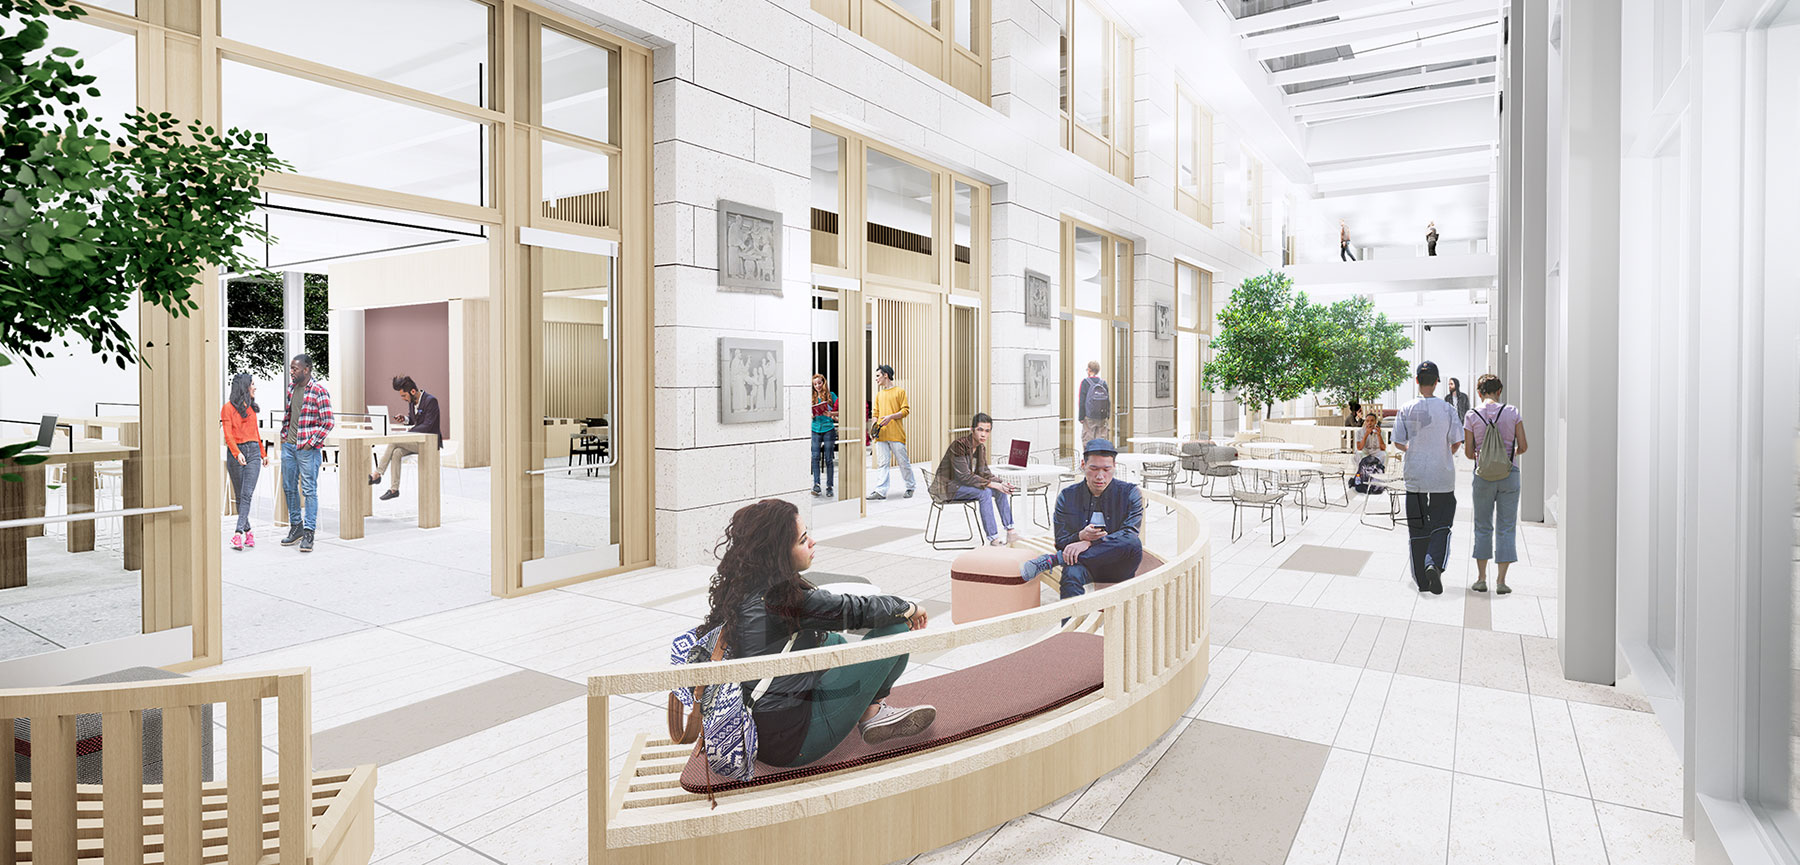 New Campus Center will Offer Ample Space to Relax and Recharge